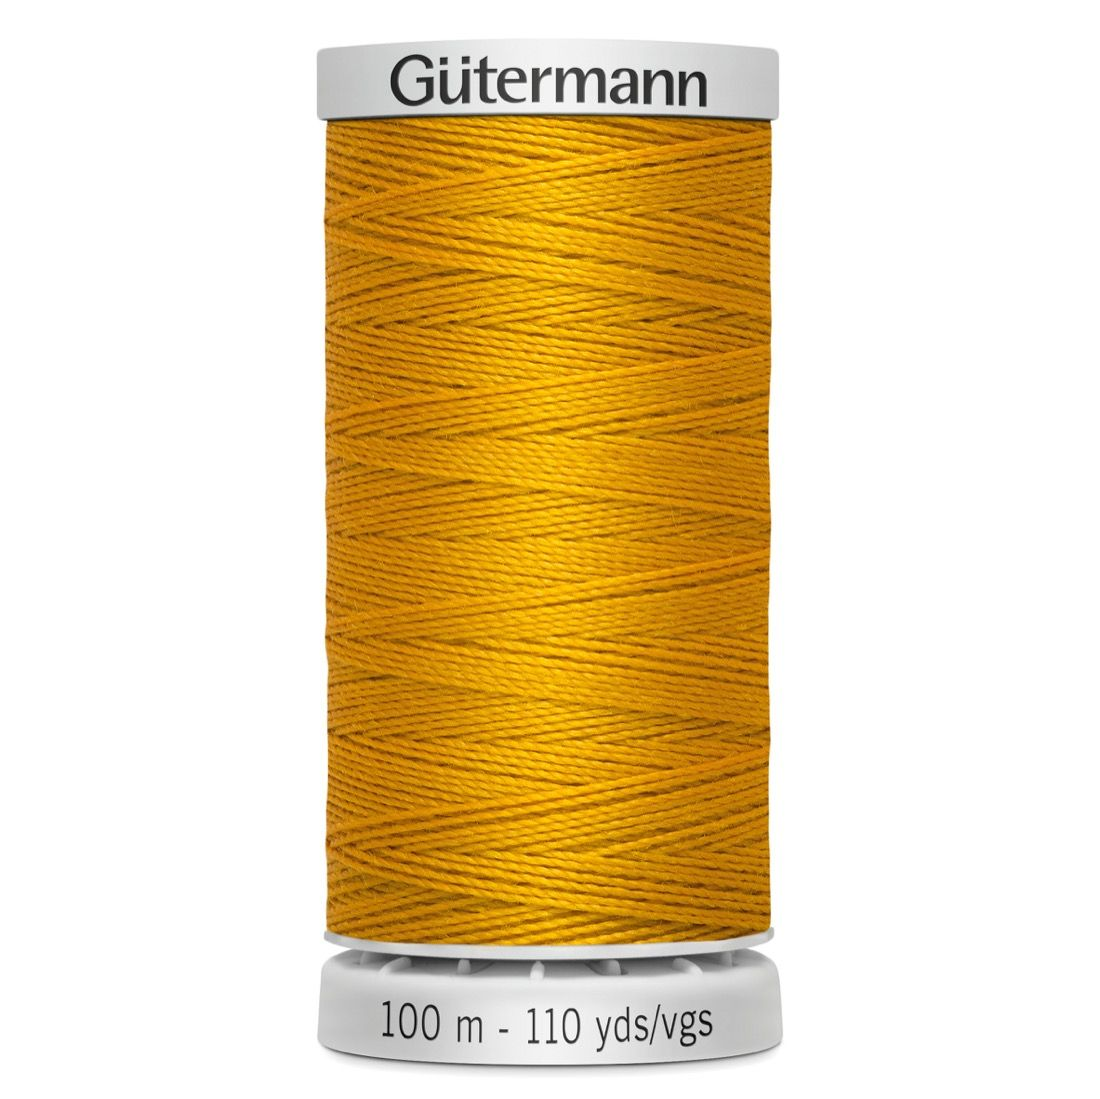 Gutermann Extra Strong Upholstery Thread - 100m - 362